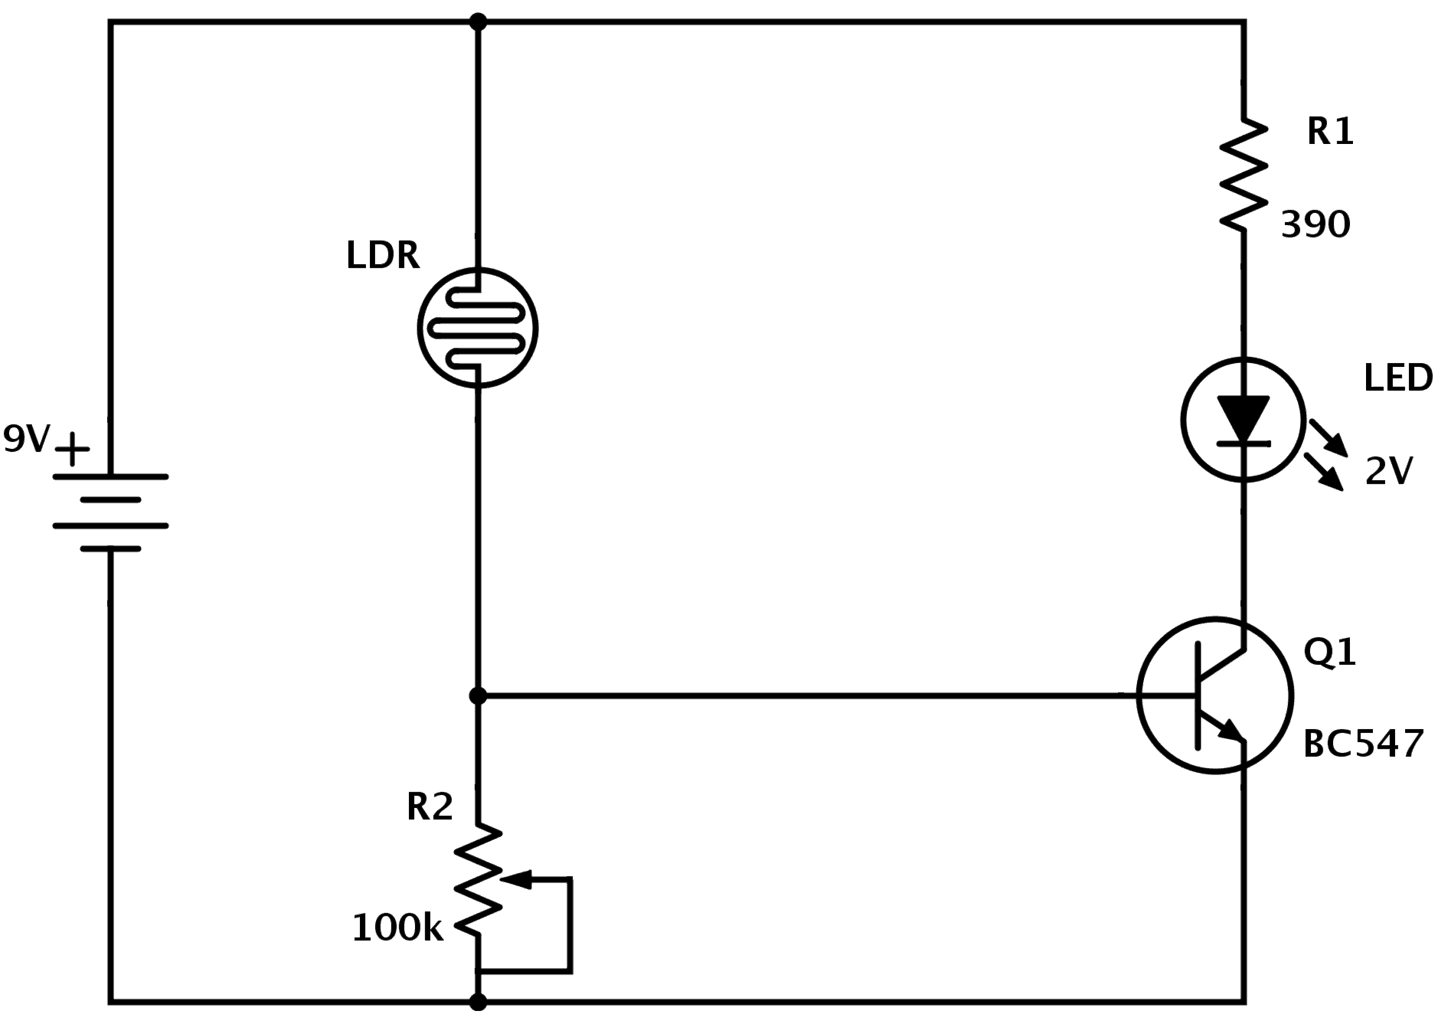 circuit diagram how to read and understand any schematic rh build electronic circuits com schematic diagram physics schematic diagrams online